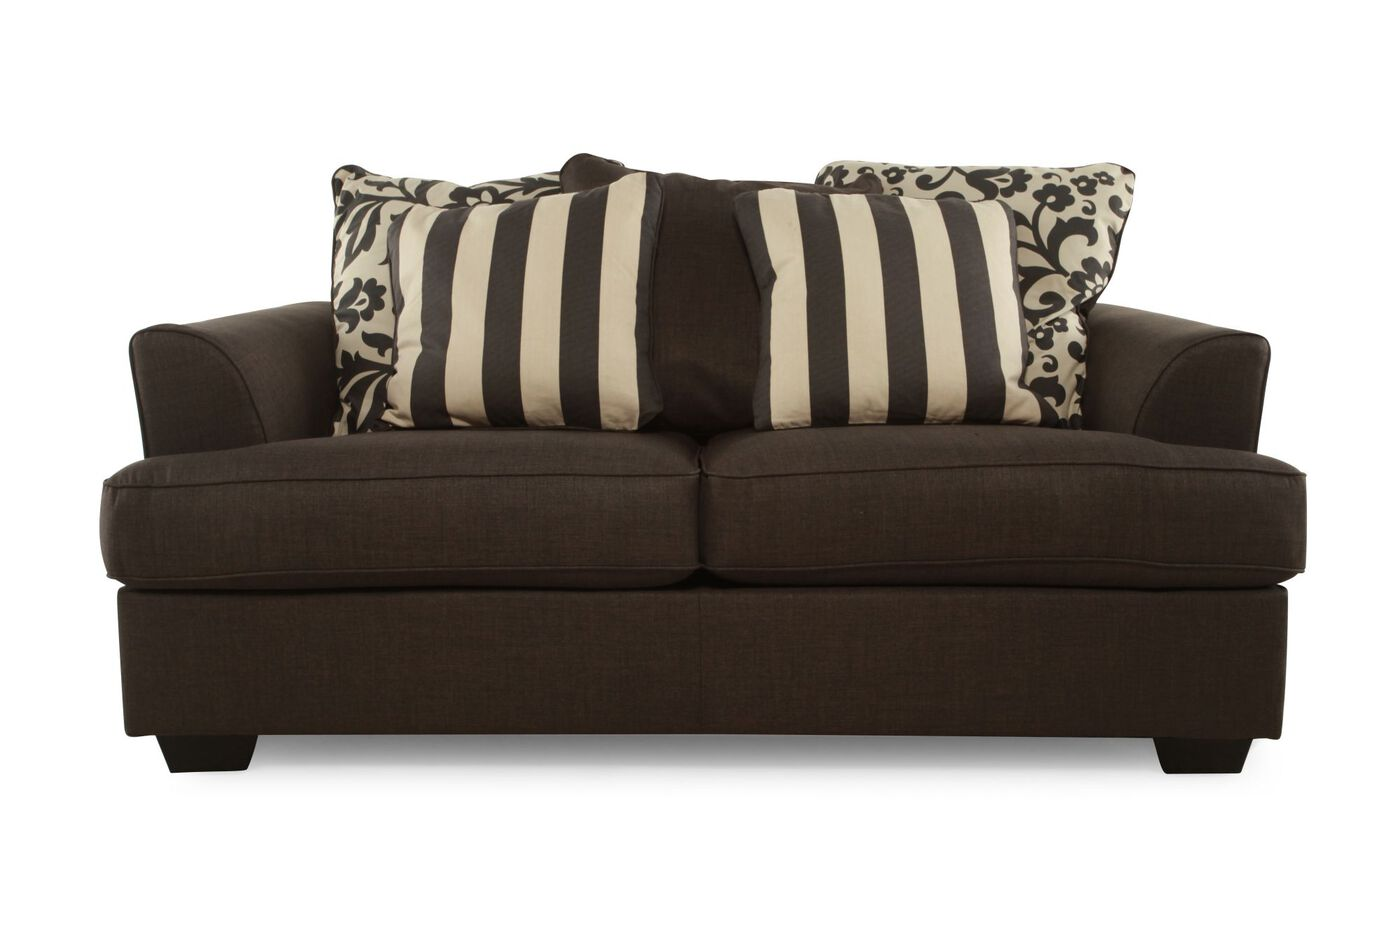 Ashley levon charcoal loveseat mathis brothers furniture Ashley couch and loveseat